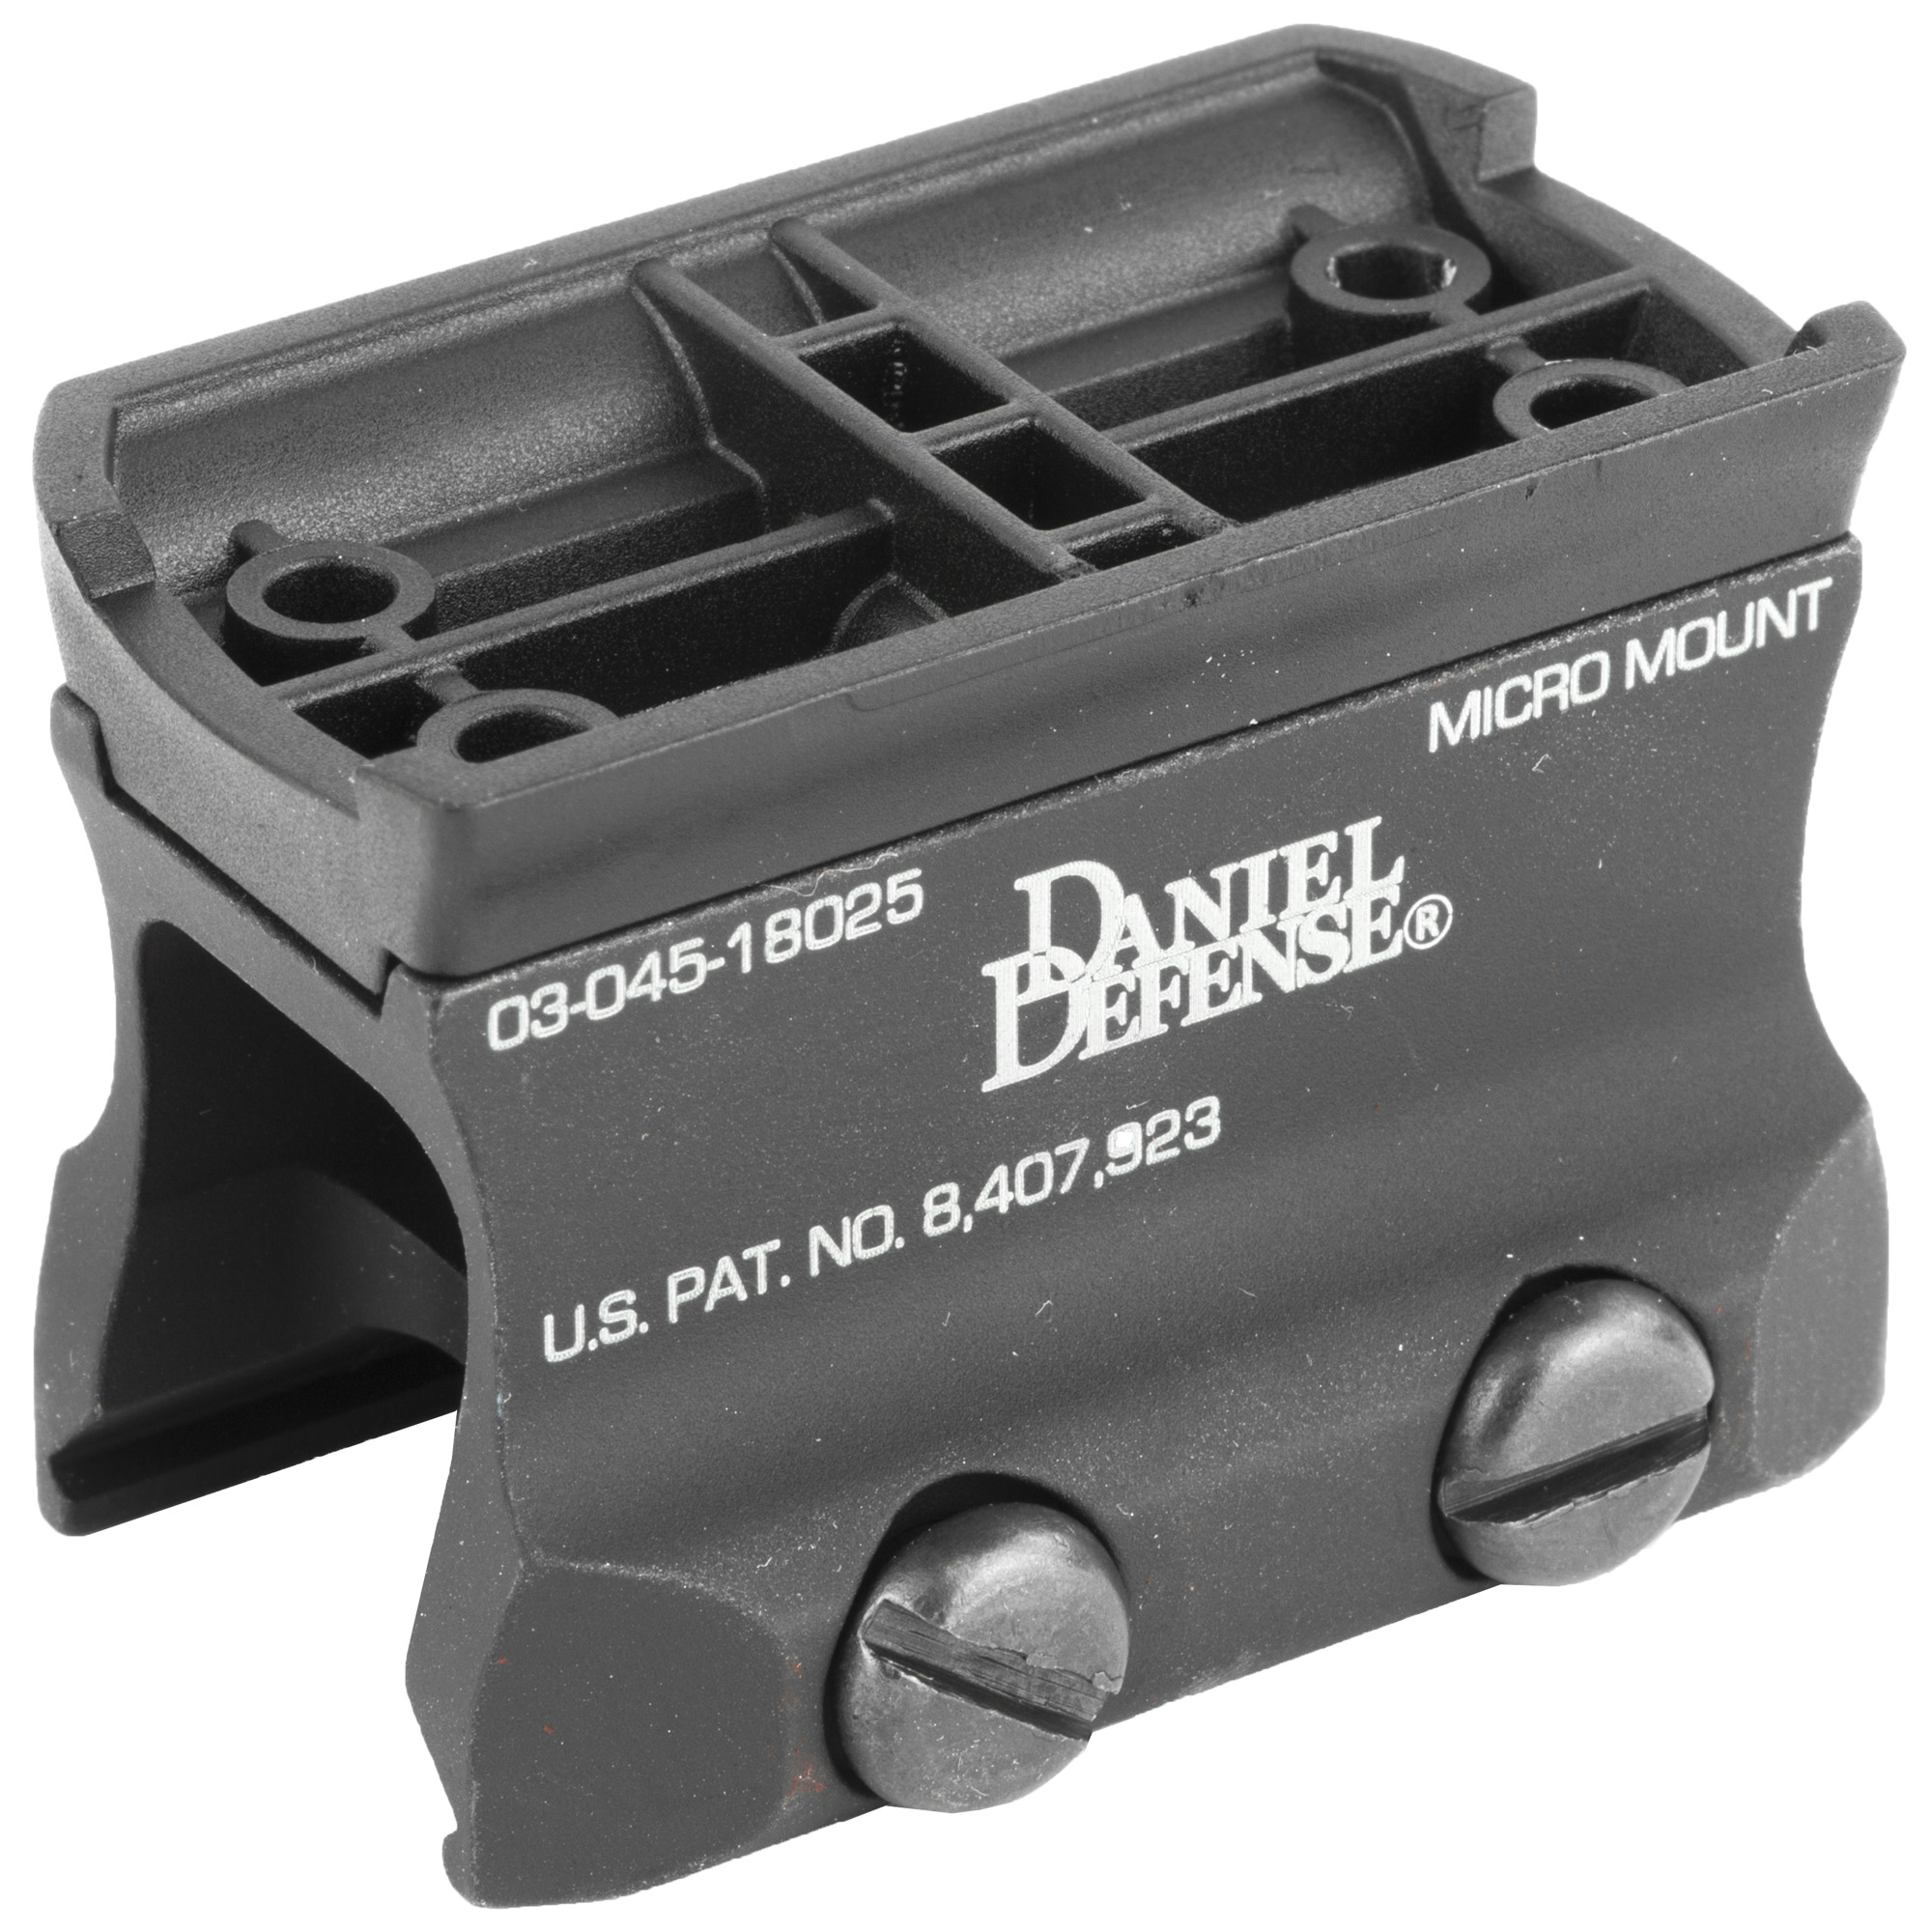 "The Daniel Defense Micro Mount is designed to securely mount a variety of popular optics to your flat-top upper receiver including Aimpoint's Micro R-1"" H-1"" H-2"" T-1"" T-2"" Vortex's Sparc I & II"" Primary Arms' Micro Dot & Advanced Micro Dot"" Holosun Technologies HS403"" or any other optic utilizing the same type of mounting interface. Offering Absolute or a Lower 13rd Co-Witness with your back-up iron sights"" this mount is ideal for shooters who are looking for one of the lightest and strongest mounts available to secure their optics."